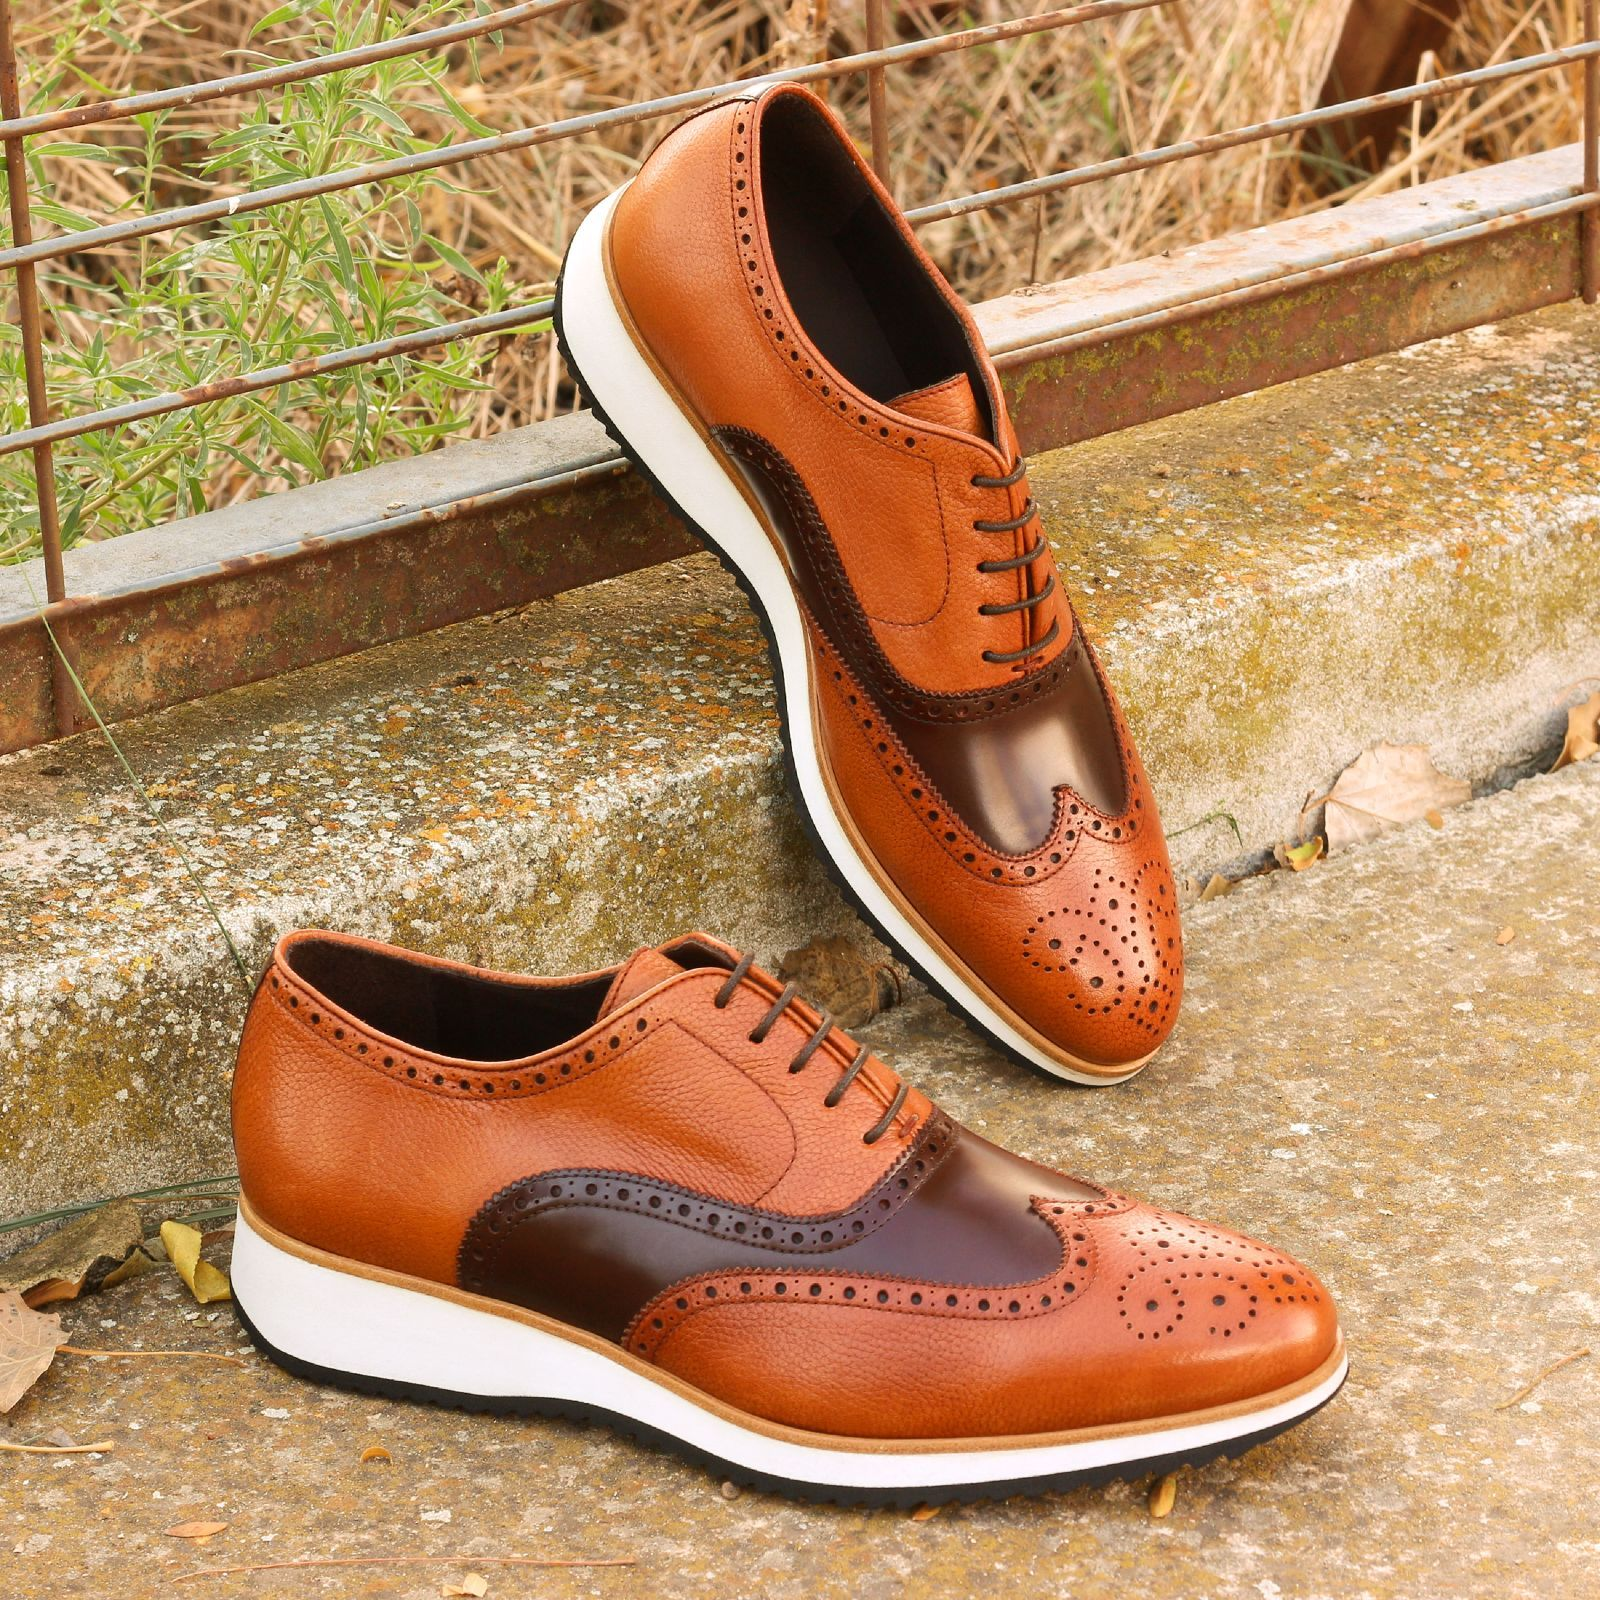 dress shoes with running soles